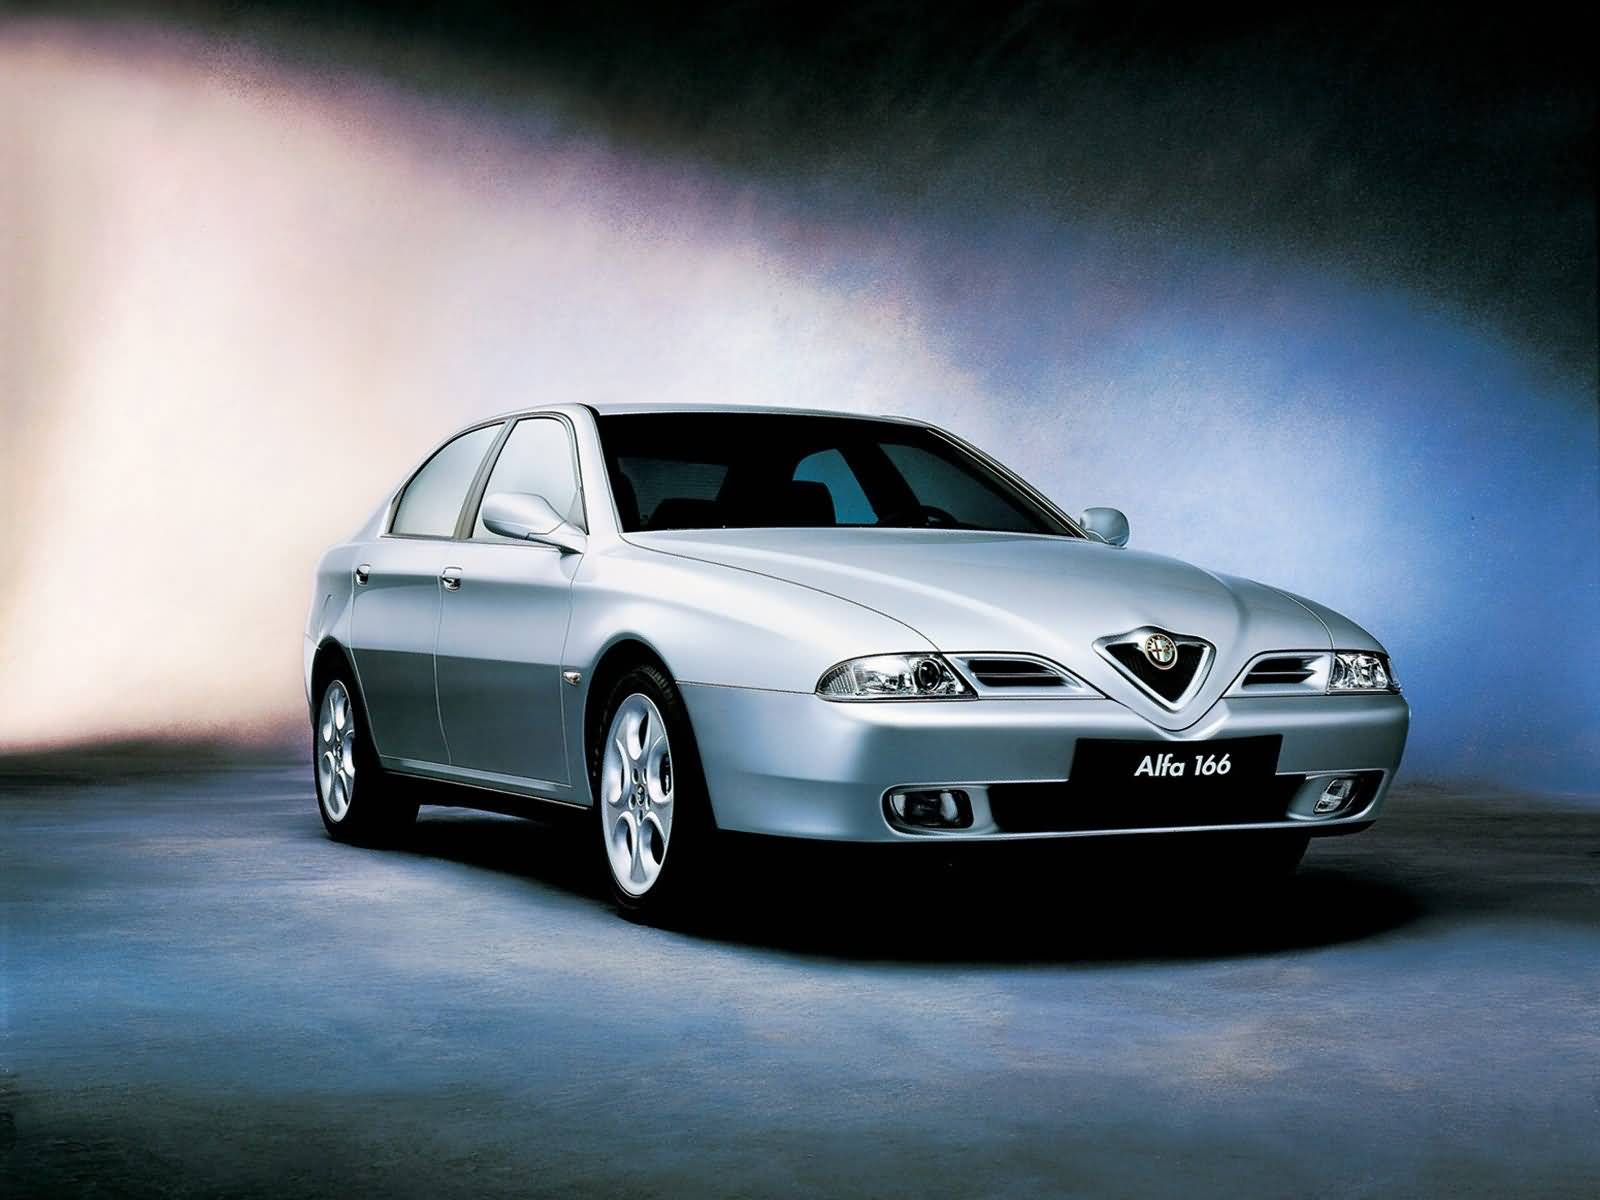 Awesome silver Alfa Romeo 156 GTA Car